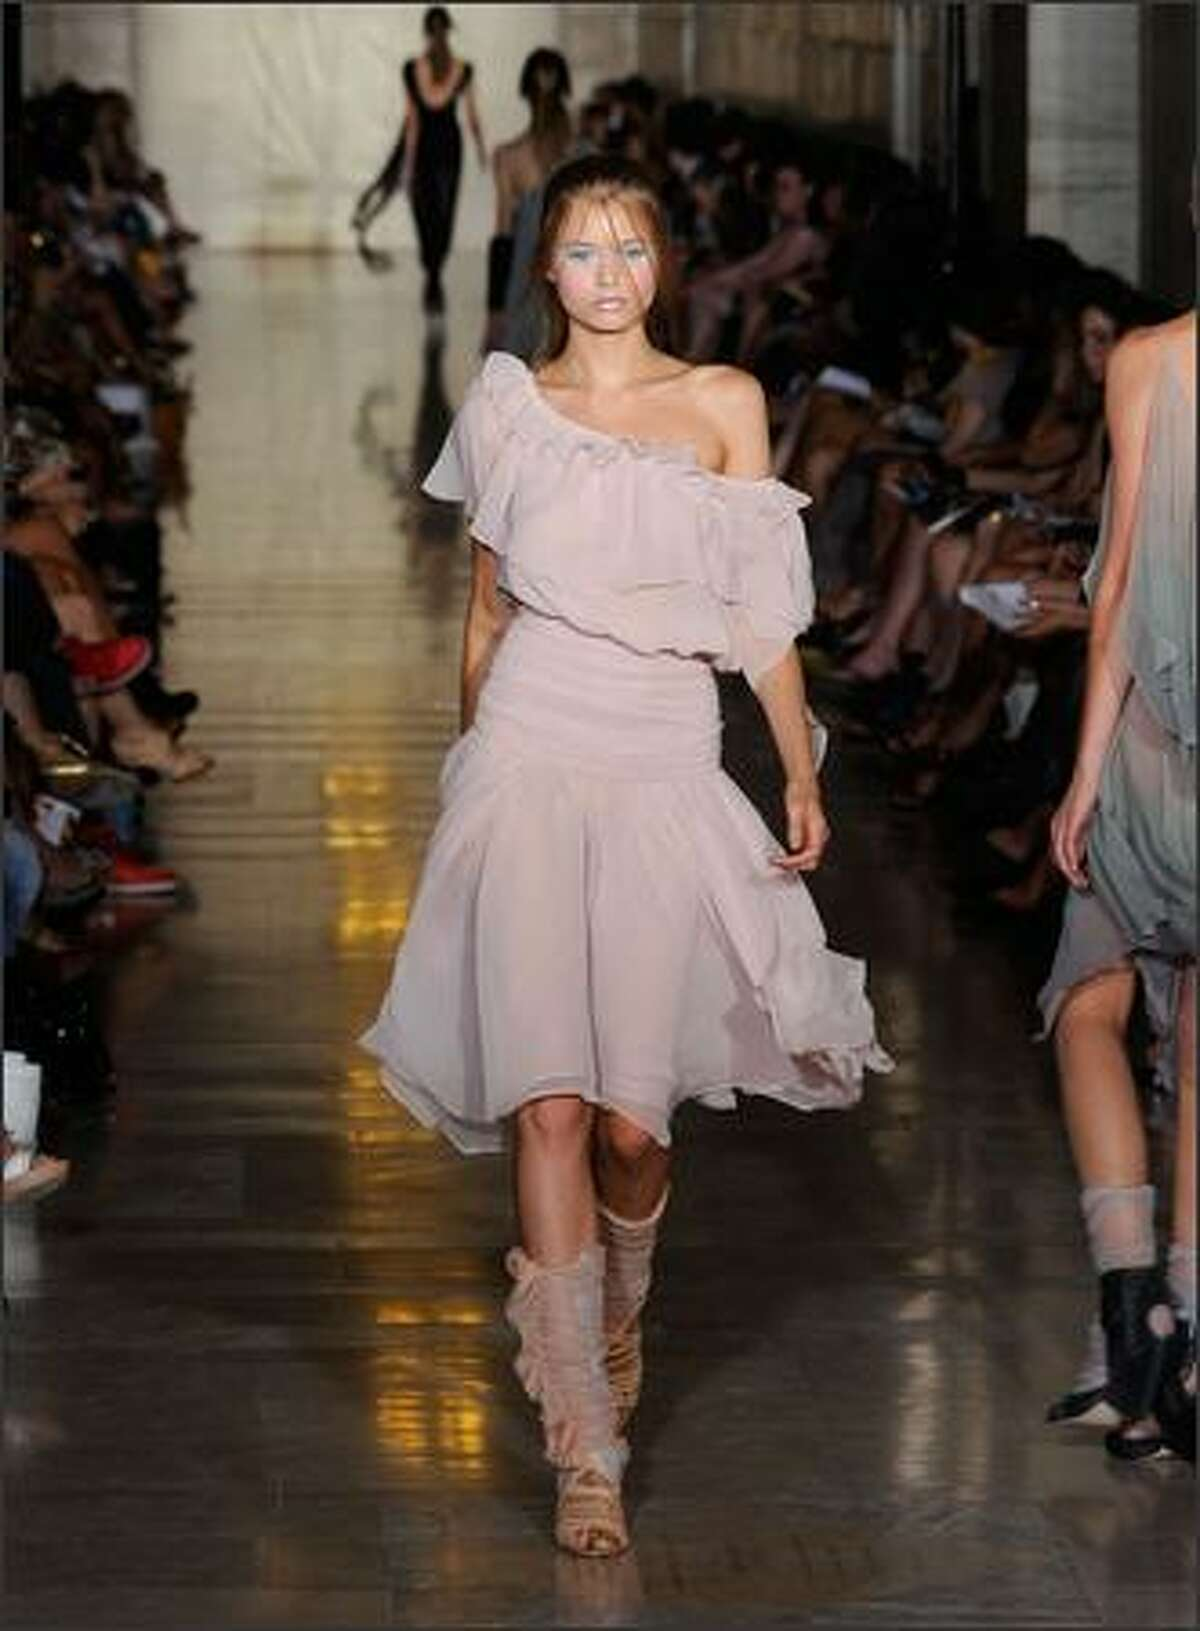 A model walks the runway at the Jill Stuart Spring 2009 fashion show during Mercedes-Benz Fashion Week at Astor Hall/NY Public Library on Monday in New York City.